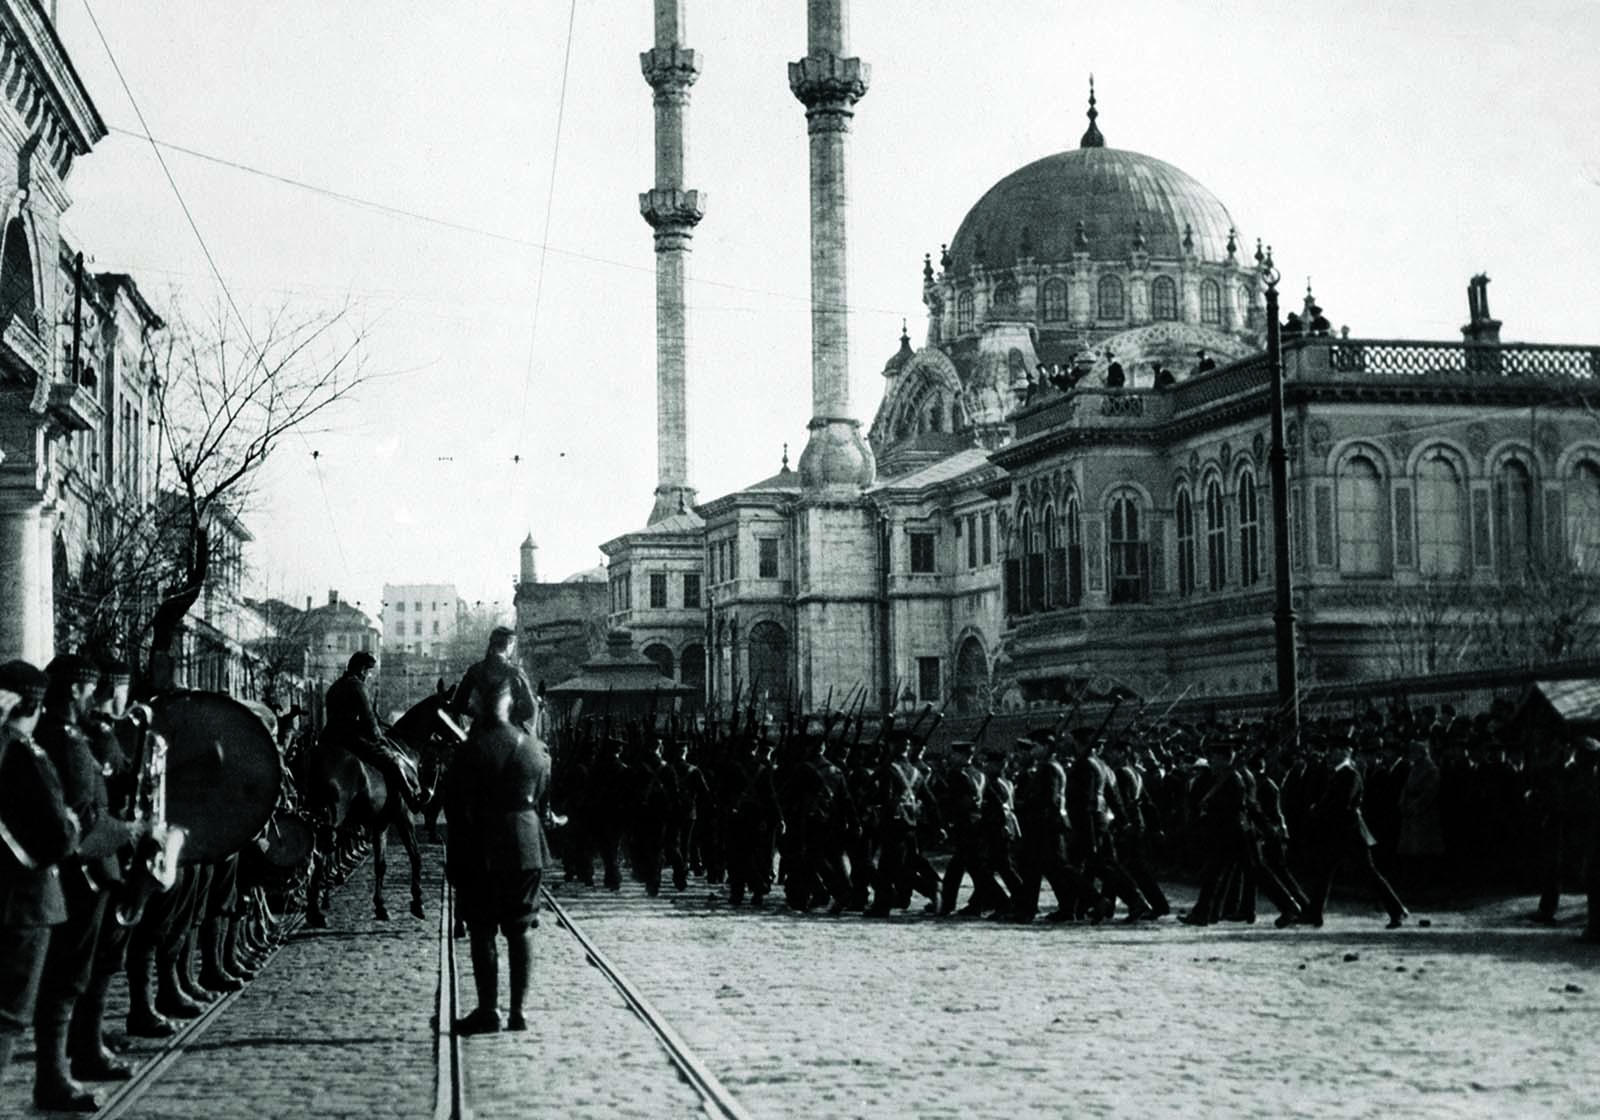 Why did the Ottoman empire decline technologically against Europe even if it did not enter isolationism like China or Japan?